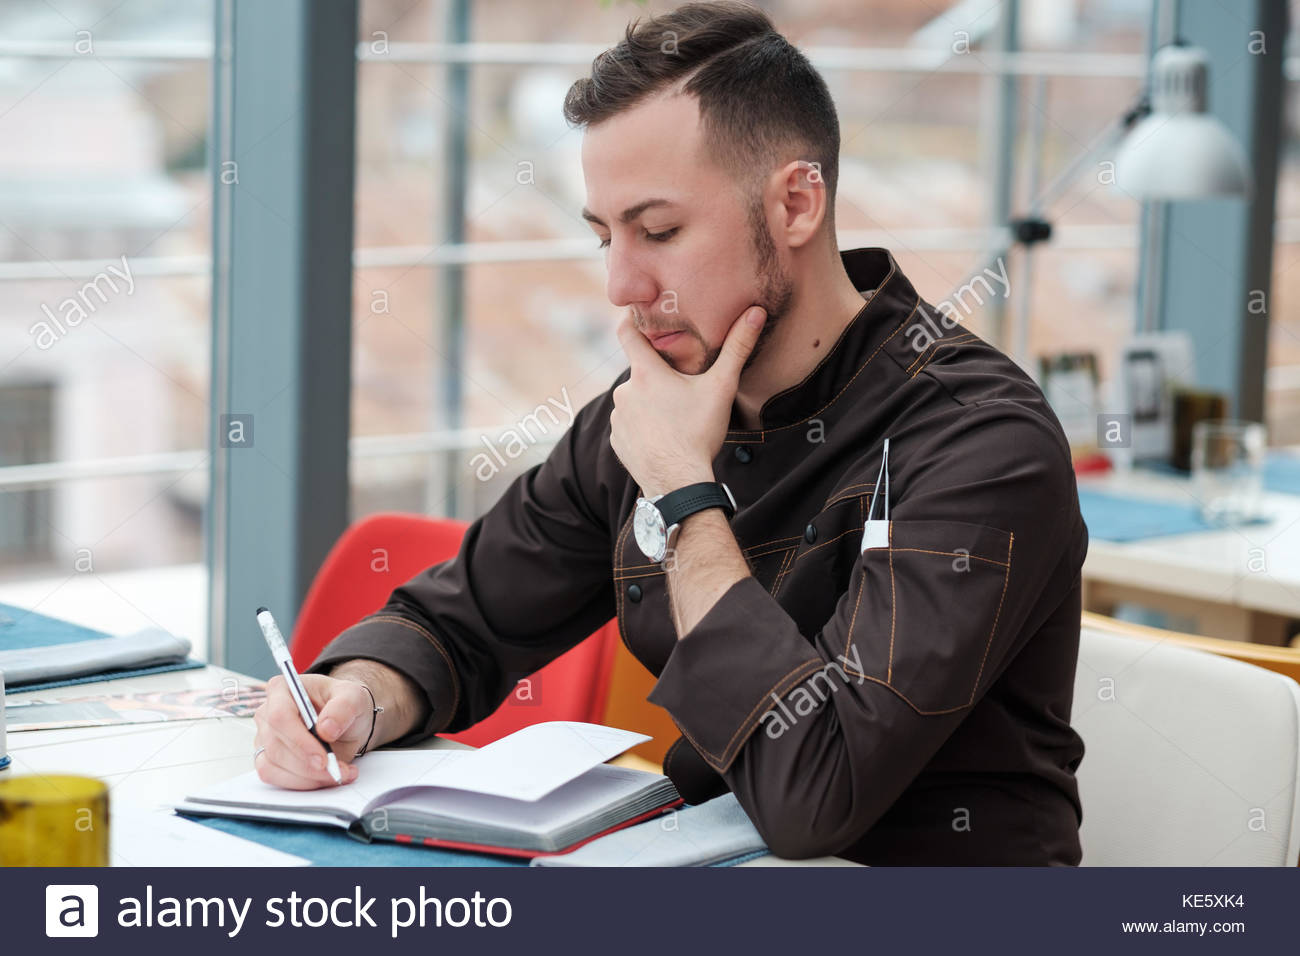 Caucasian male chef cook thinking about new menu or recepts. - Stock Image